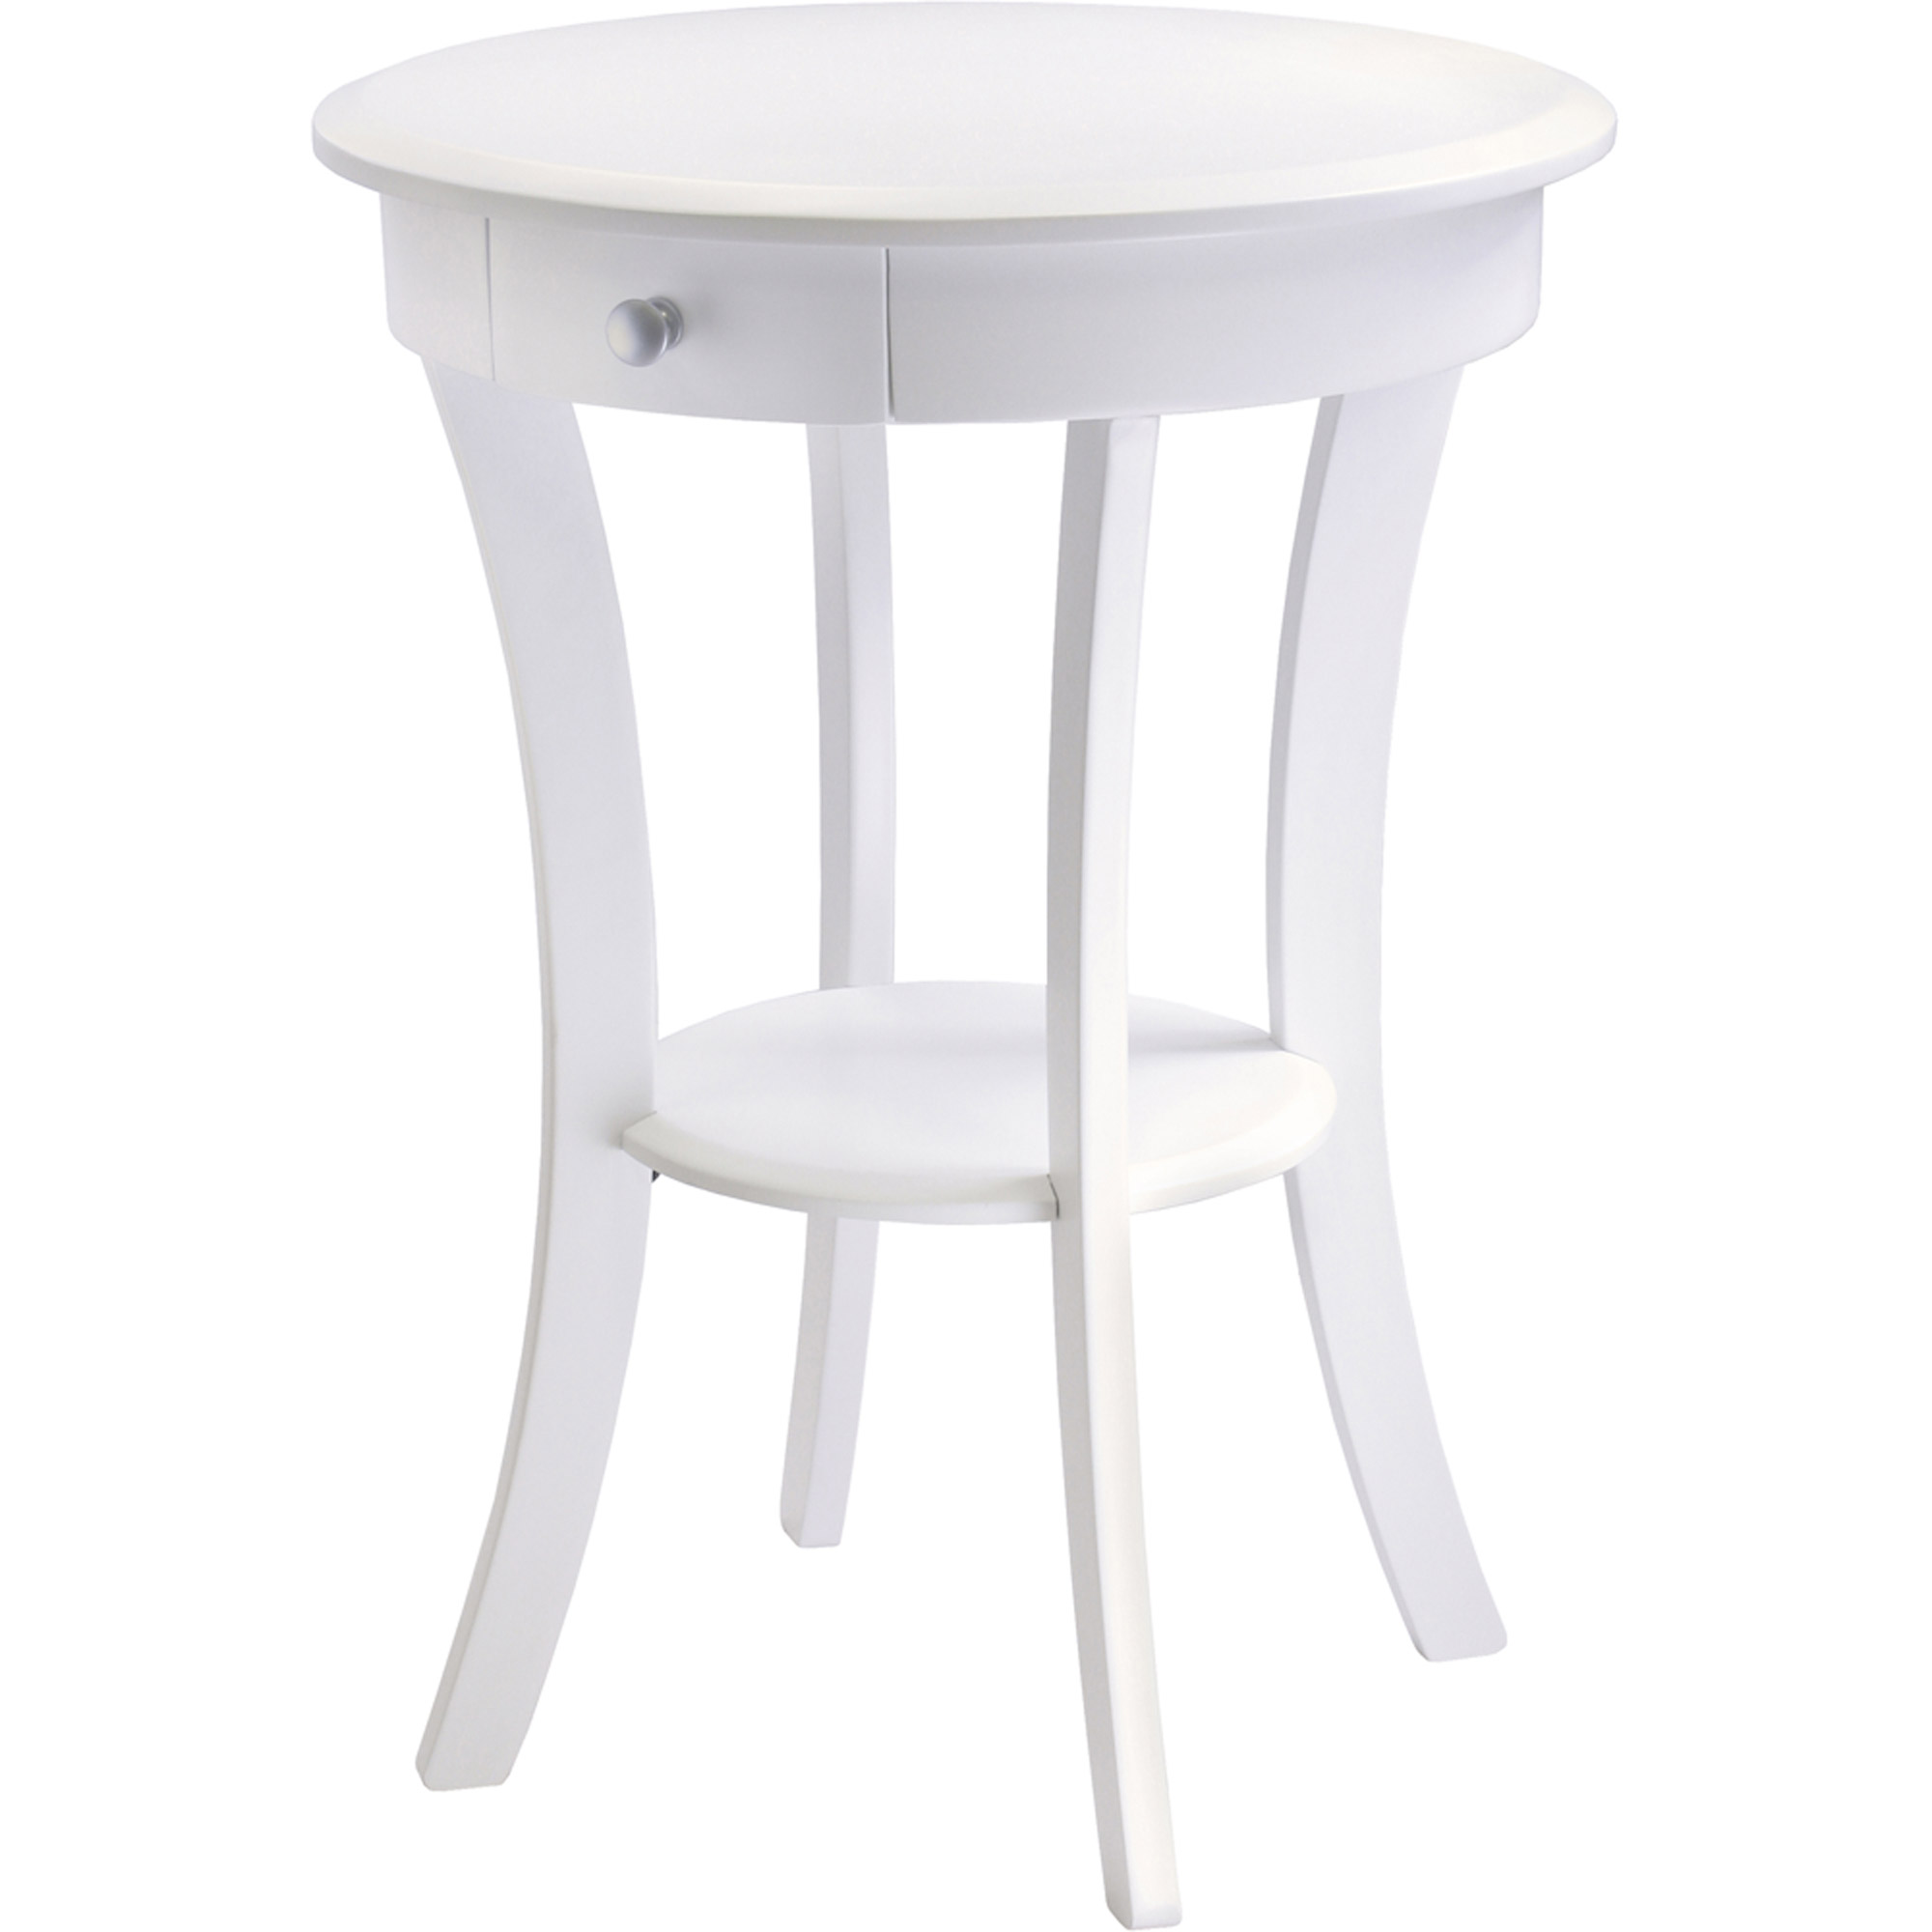 melamine argos table dining rent white top off high tablecloths small granite and pedestal corner toppers whitewash kitchen antique glass distressed round chairs tables accent